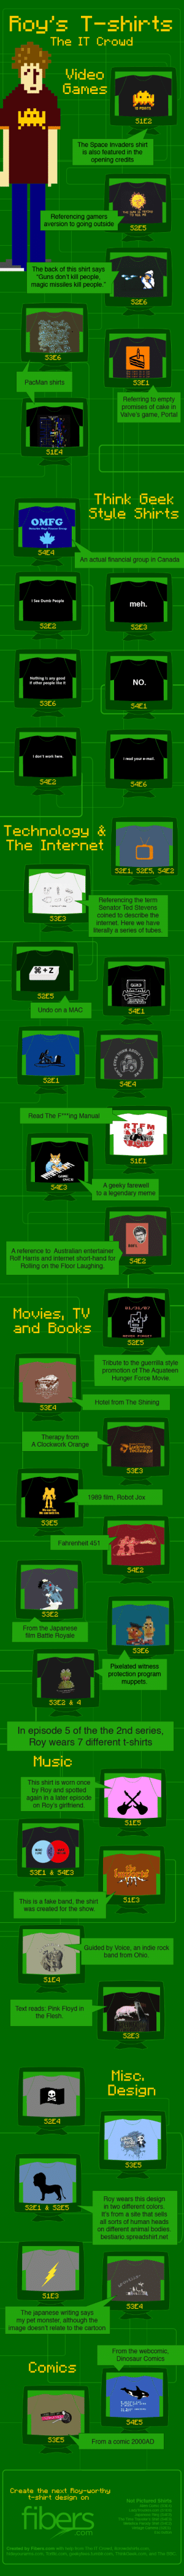 """Roy's t-shirts: Roy's T-shirts  The IT Croud  Wideo  Games  1D POINTS  51E2  The Space Invaders shirt  is also featured in the  opening credits  THE SUN IS TRYING  TO KILL ME  Referencing gamers  aversion to going outside  52E5  The back of this shirt says  """"Guns don't kill people,  magic missiles kill people.""""  52E6  53E6  The cake is а lie  The cake is a lie  Ehe cake is a Tie  PacMan shirts  53E1  Referring to empty  promises of cake in  Valve's game, Portal  51E4  Think Geek  Style Shirts  OMFG  Ontarios Mega Finance Croup  54E4  An actual financial group in Canada  I See Dumb People  meh.  52E2  52E3  Nothing Is any good  If other people Iike It  NO.  53E6  54E1  I don't work here.  T read your e-mall.  54E2  54E6  Technology &  The Internet  52E1, 52E5, 54E2  Referencing the term  Senator Ted Stevens  coined to describe the  53E3  internet. Here we have  literally a series of tubes.  52E5  HOME TAPING  ISKILLINGIMUSIC  Undo on a MAC  54E1  ABOUT  52E1  54E4  Read The F***ing Manual  RTFM  51E1  GAME  OVER  A geeky farewell  to a legendary meme  54E3  ROFL  A reference to Australian entertainer  Rolf Harris and internet short-hand for  54E2  Rolling on the Floor Laughing.  01/31/07  Movies, TV  and Books  NEVER FORGET  52E5  Tribute to the guerrilla style  promotion of The Aquateen  Hunger Force Movie.  ये  ONEPOOR  Hotel from The Shining  53E4  Therapy from  A Clockwork Orange  odsy & Brance  Ludovico  Technique  53E3  1989 film, Robot Jox  We can Iive.  We can beth Iive.  53E5  Fahrenheit 451  54E2  53E2  From the Japanese  film Battle Royale  53E6  Pixelated witness  protection program  muppets.  53E2& 4  In episode 5 of the the 2nd series,  Roy wears 7 different t-shirts  Music  This shirt is worn once  by Roy and spotted  again in a later episode  on Roy's girlfriend.  51E5  MUSIC  MUSIC  YOU LIKE  I LIKE  the  Lungoorts  53E1 & S4E3  51E3  This is a fake band, the shirt  was created for the show.  OKCE  Guided by Voice, an indie rock  band from Ohio.  CHI"""